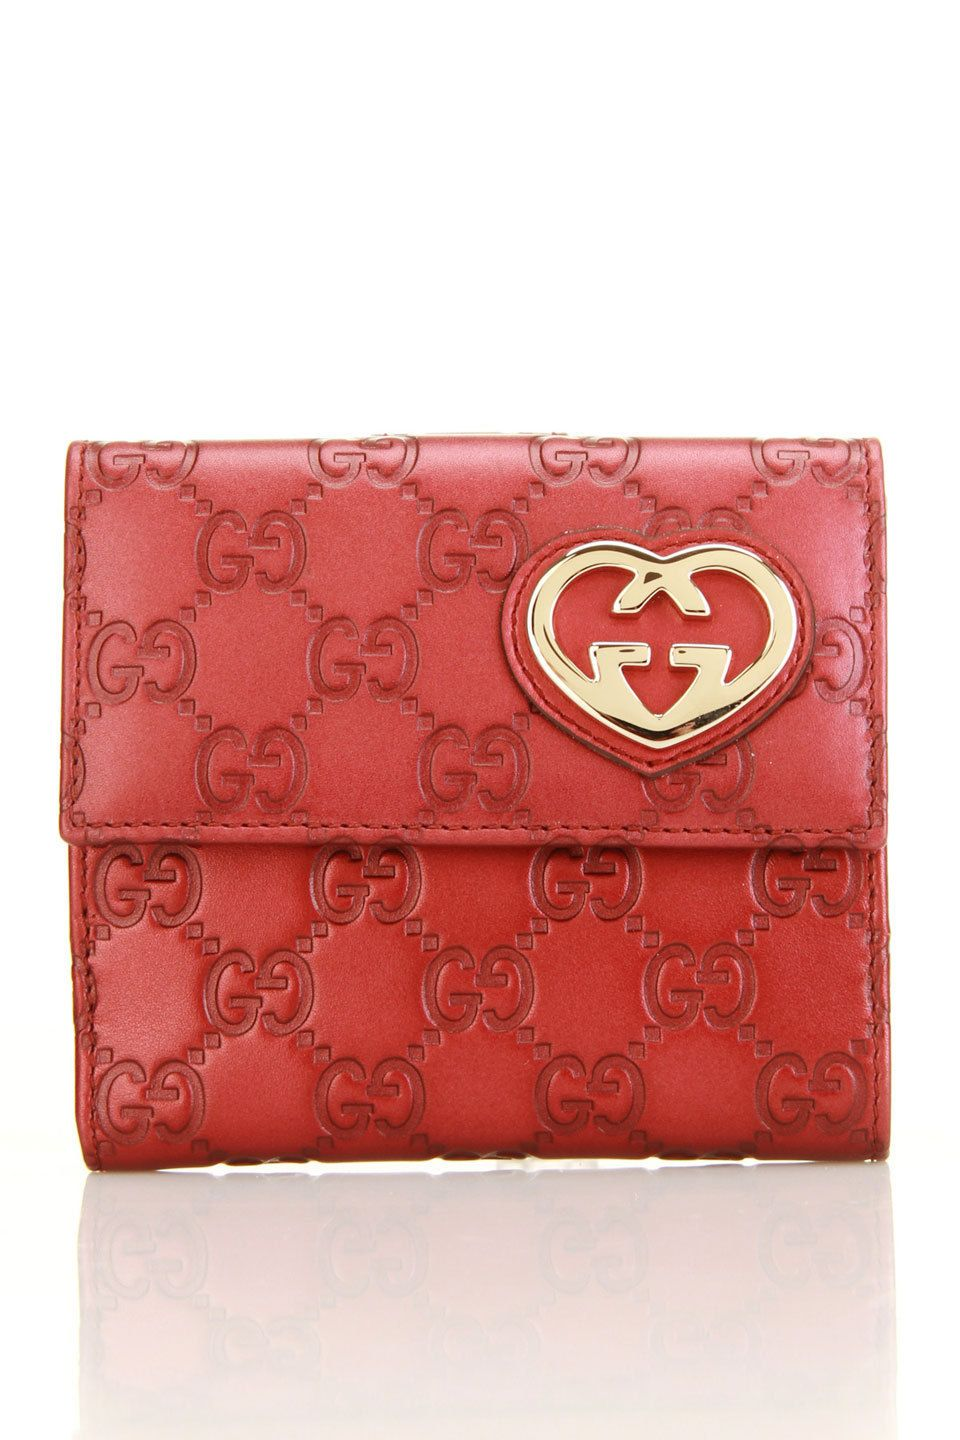 Gucci ladies lovely heart hardware wallet in pink wallet